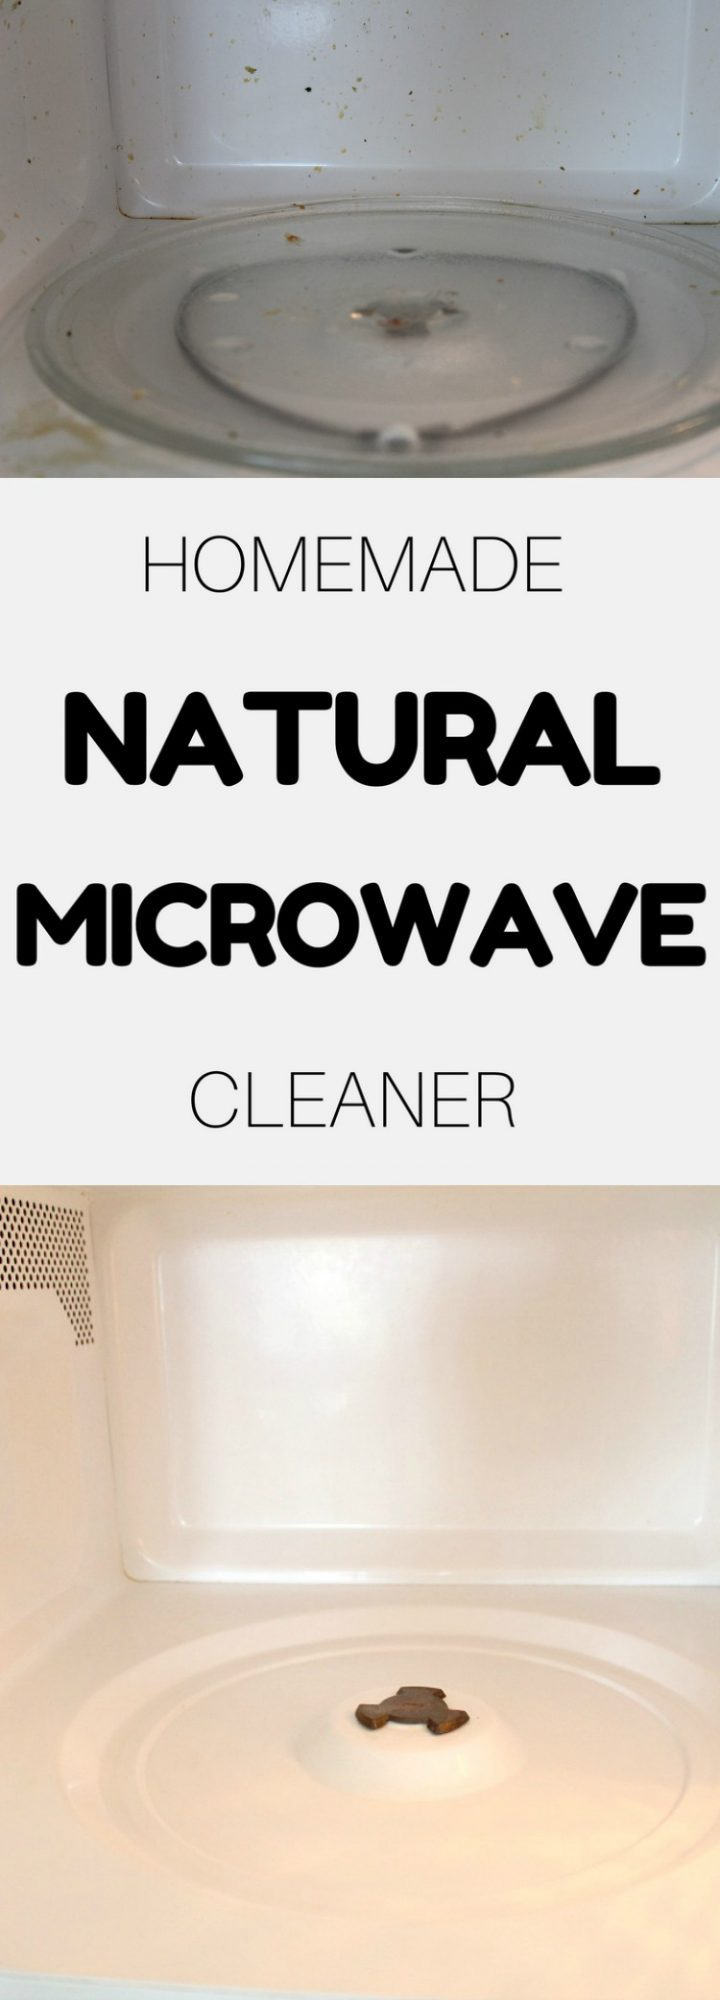 Natural way to clean microwave